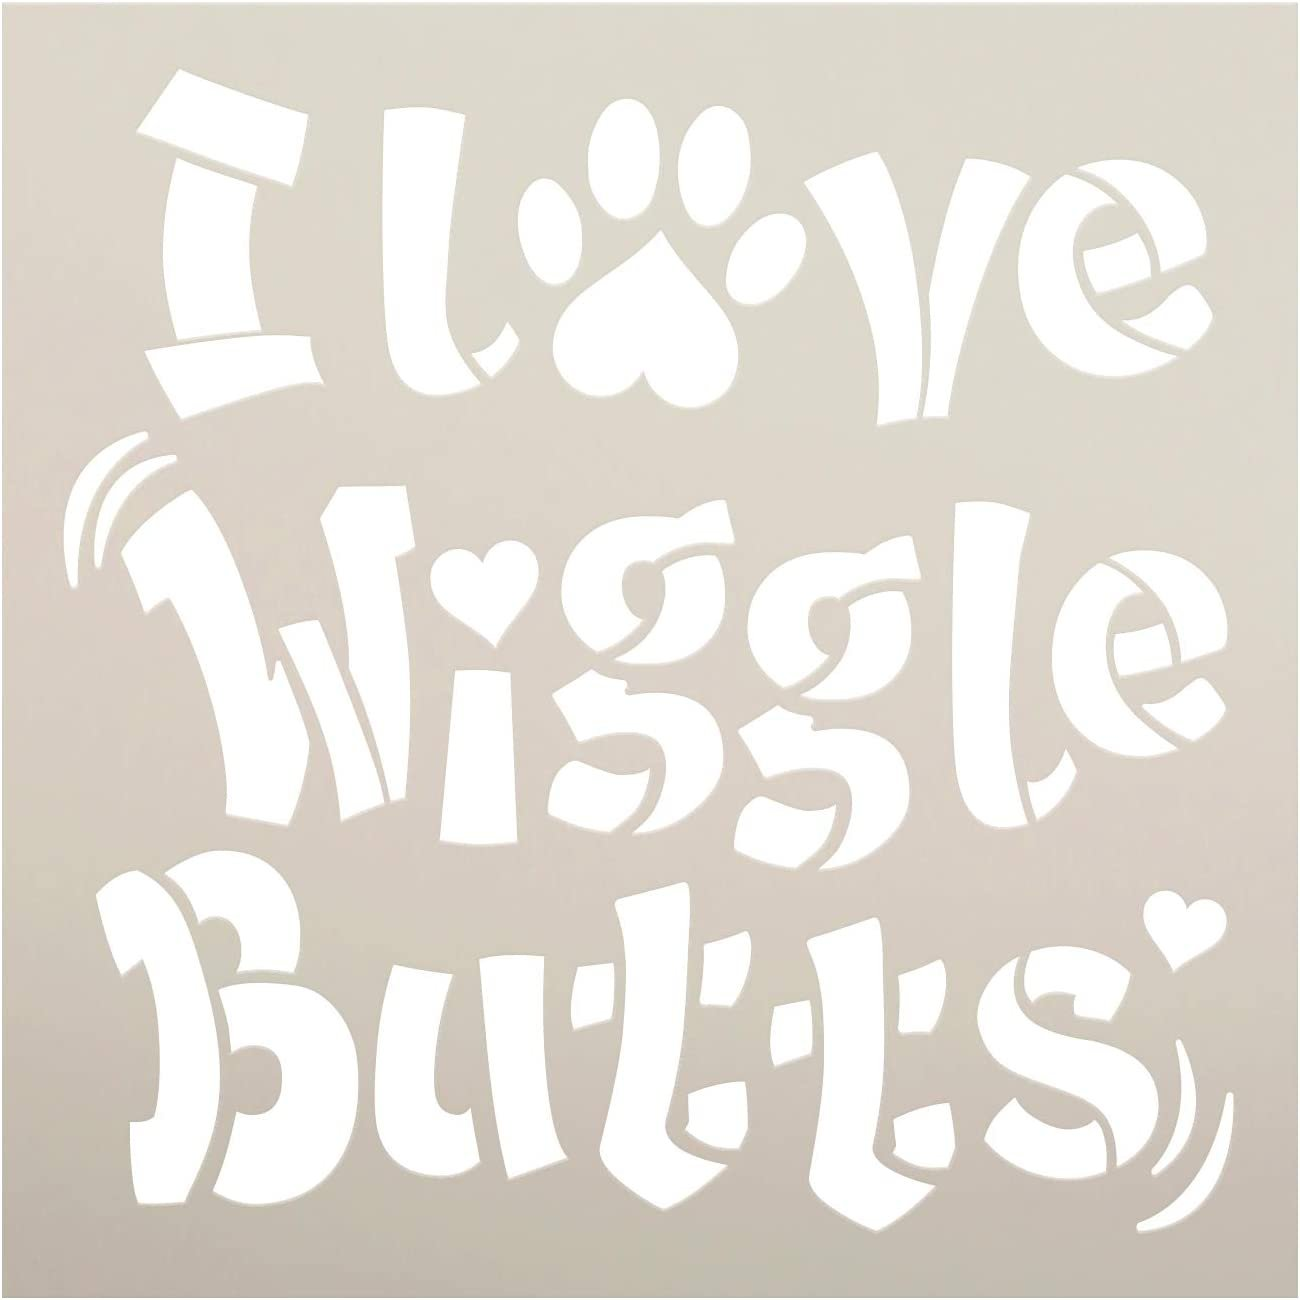 Love Wiggle Butts Stencil by StudioR12 | DIY Animal Pet Dog Mom Owner Home Decor | Craft & Paint Wood Sign | Reusable Mylar Template | Funny Heart Paw Print Gift | Select Size